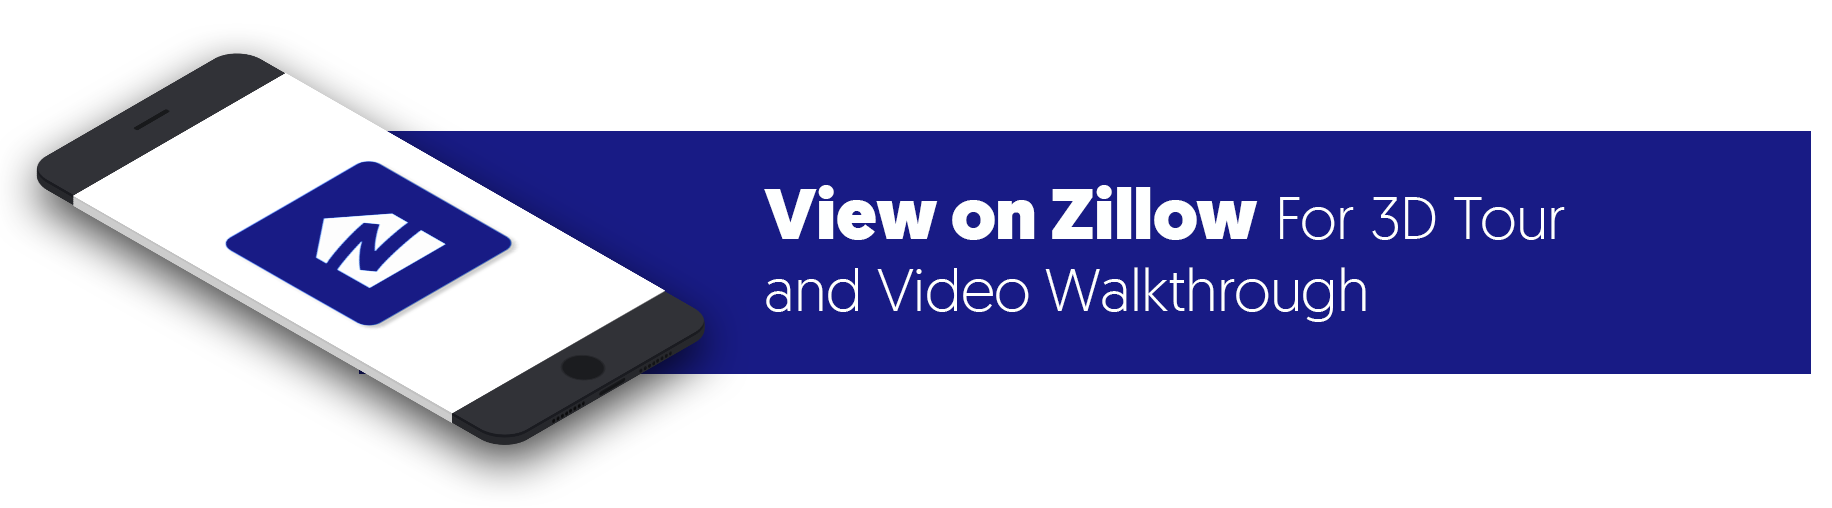 View on Zillow